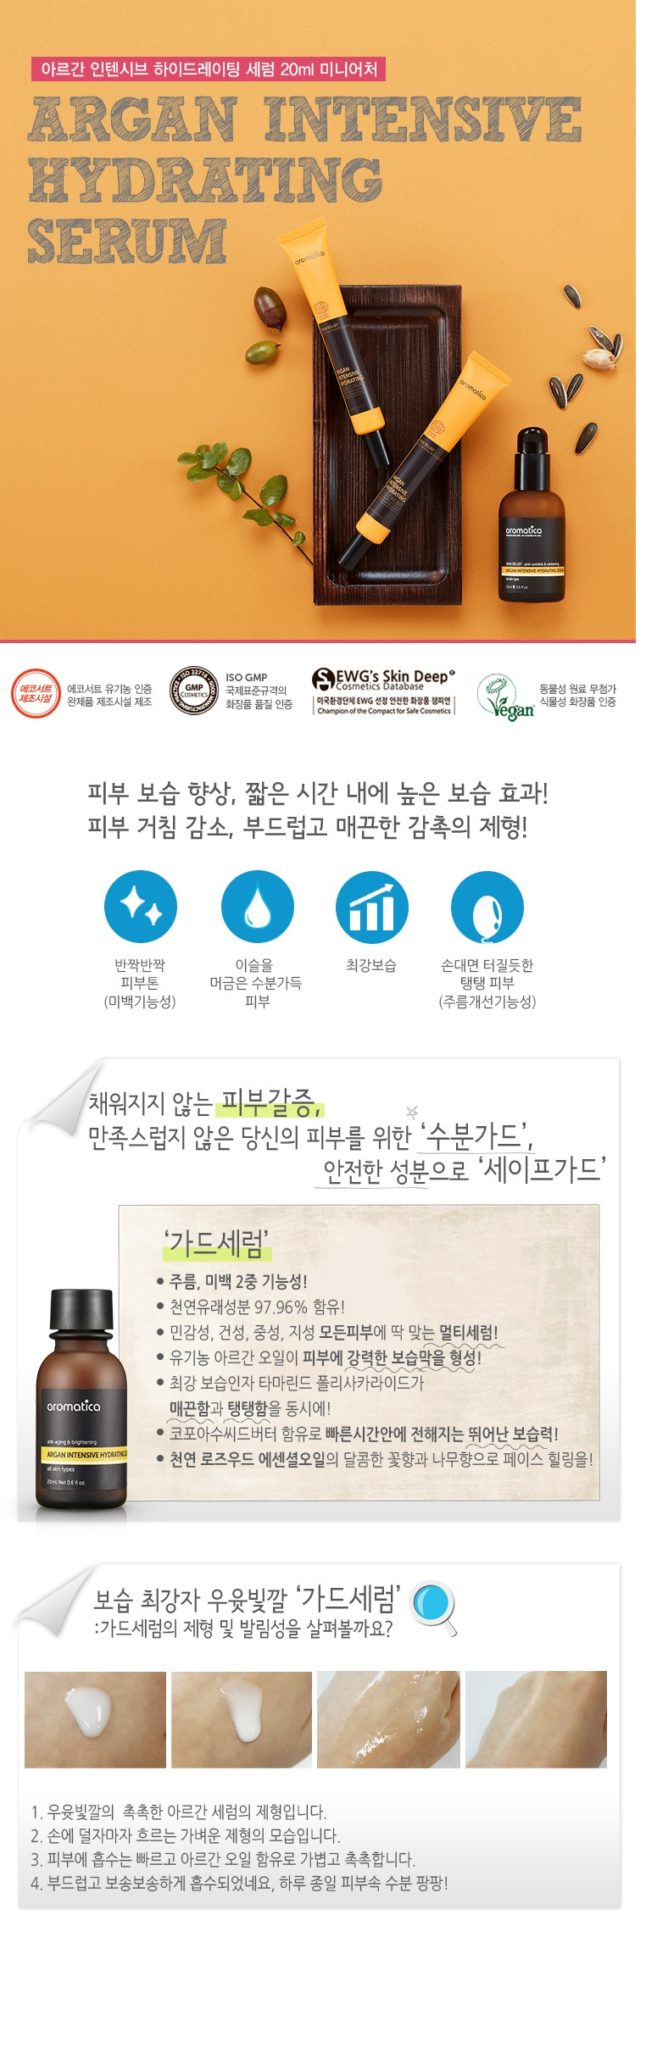 Aromatica Argan Intensive Hydrating Serum 20 korean cosmetic skincare product online shop malaysia china japan1